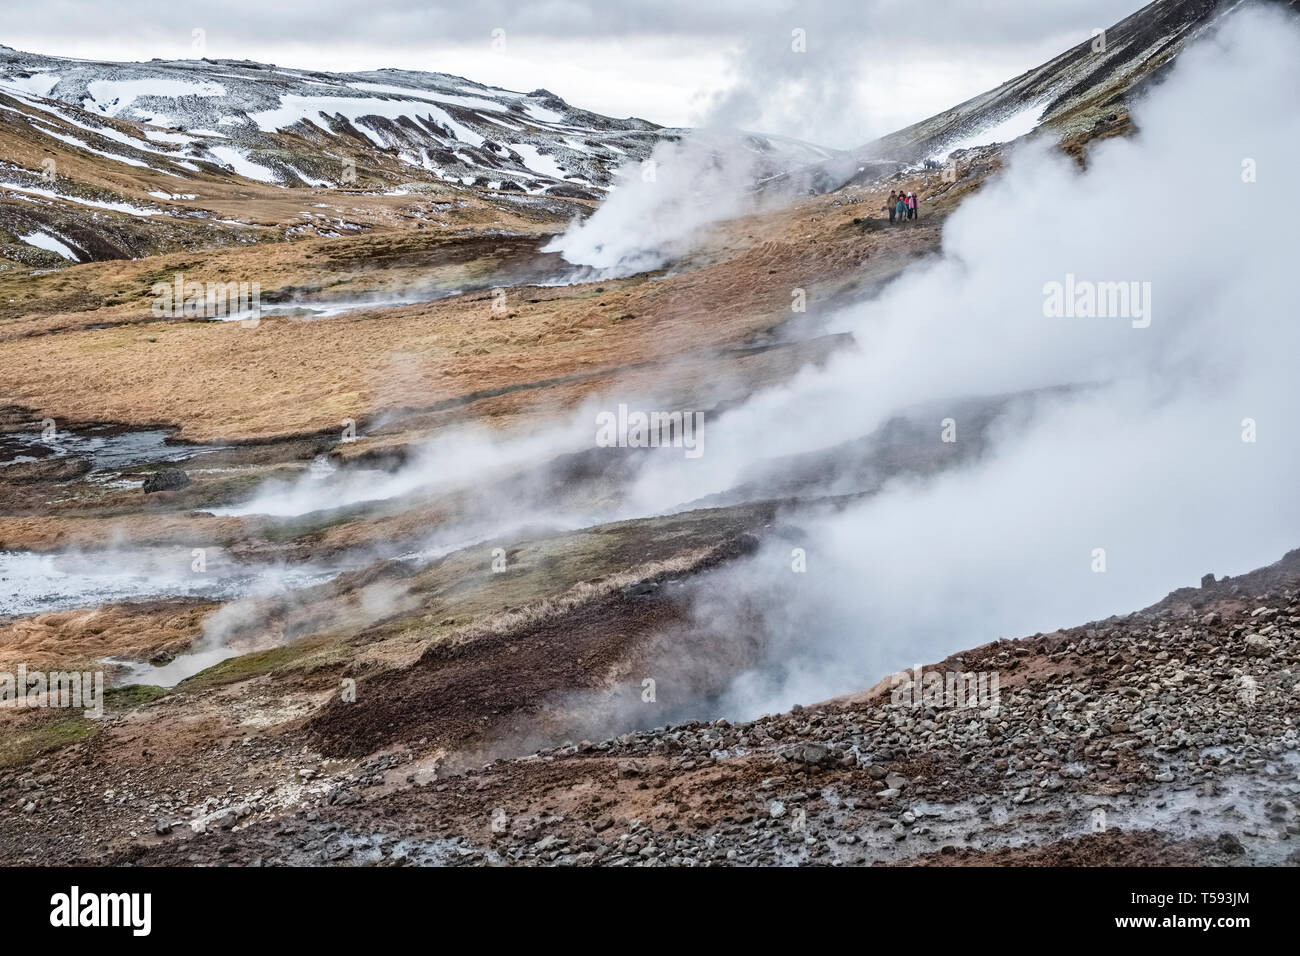 Near Hveragerði, Iceland. Walkers passing geothermal fumaroles on the path up to the popular hot river in the Reykjadalur valley Stock Photo